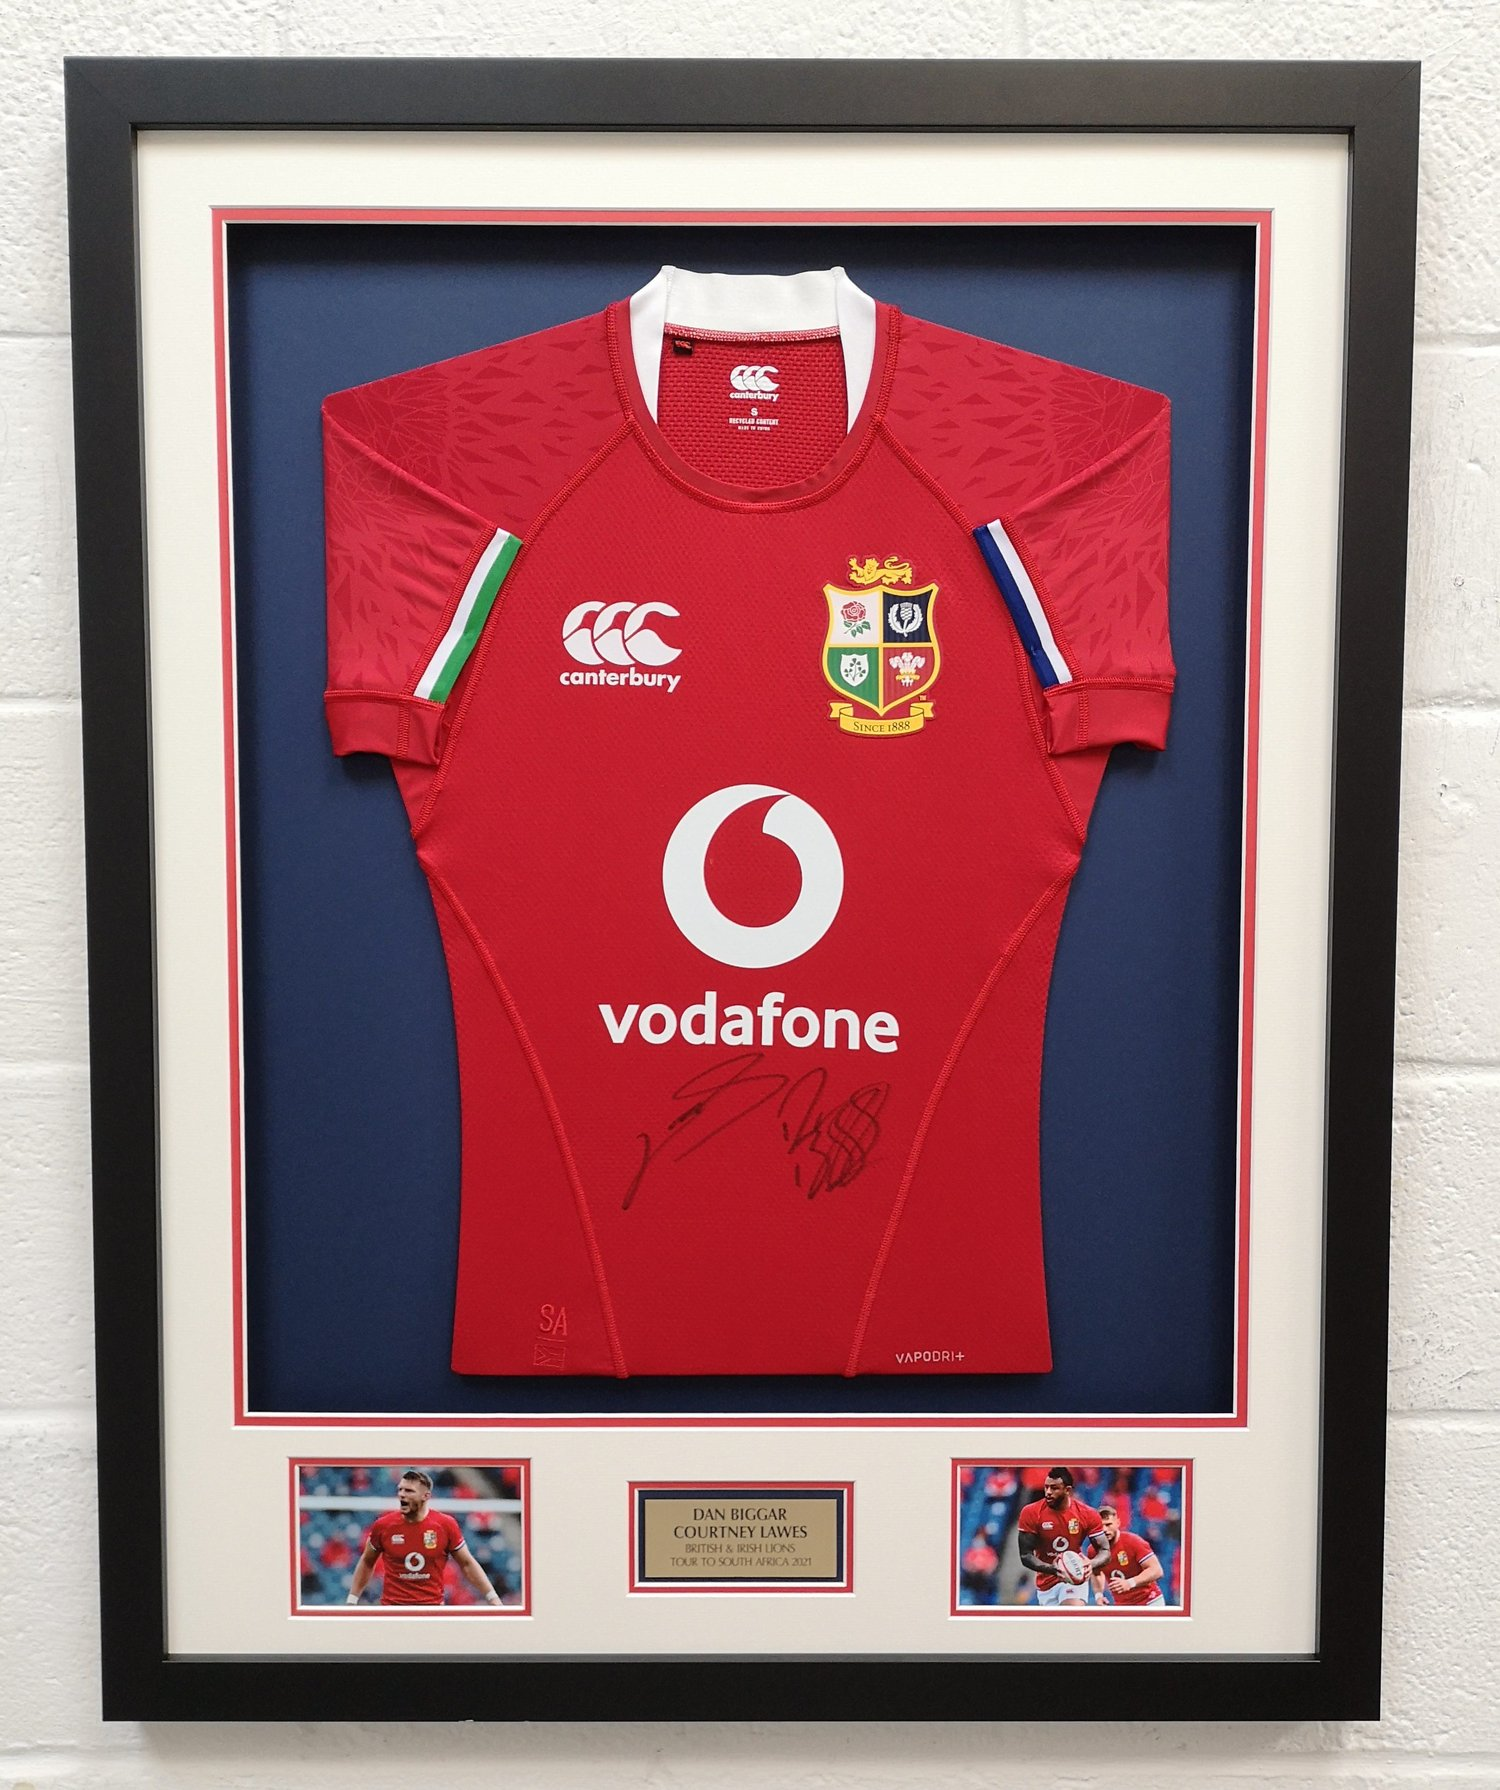 Bid to WIN a framed Lions shirt signed by Courtney Lawes and Dan Biggar.